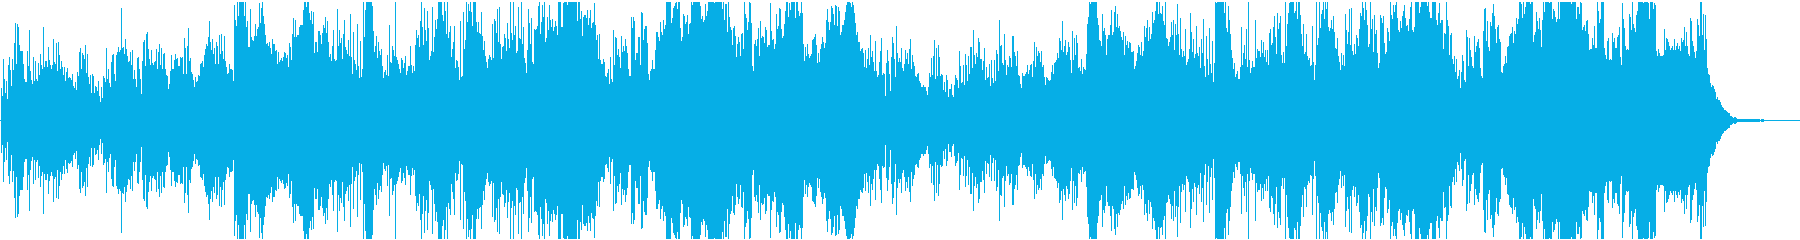 The quietness of battle BGM serious battlefield's reproduced waveform